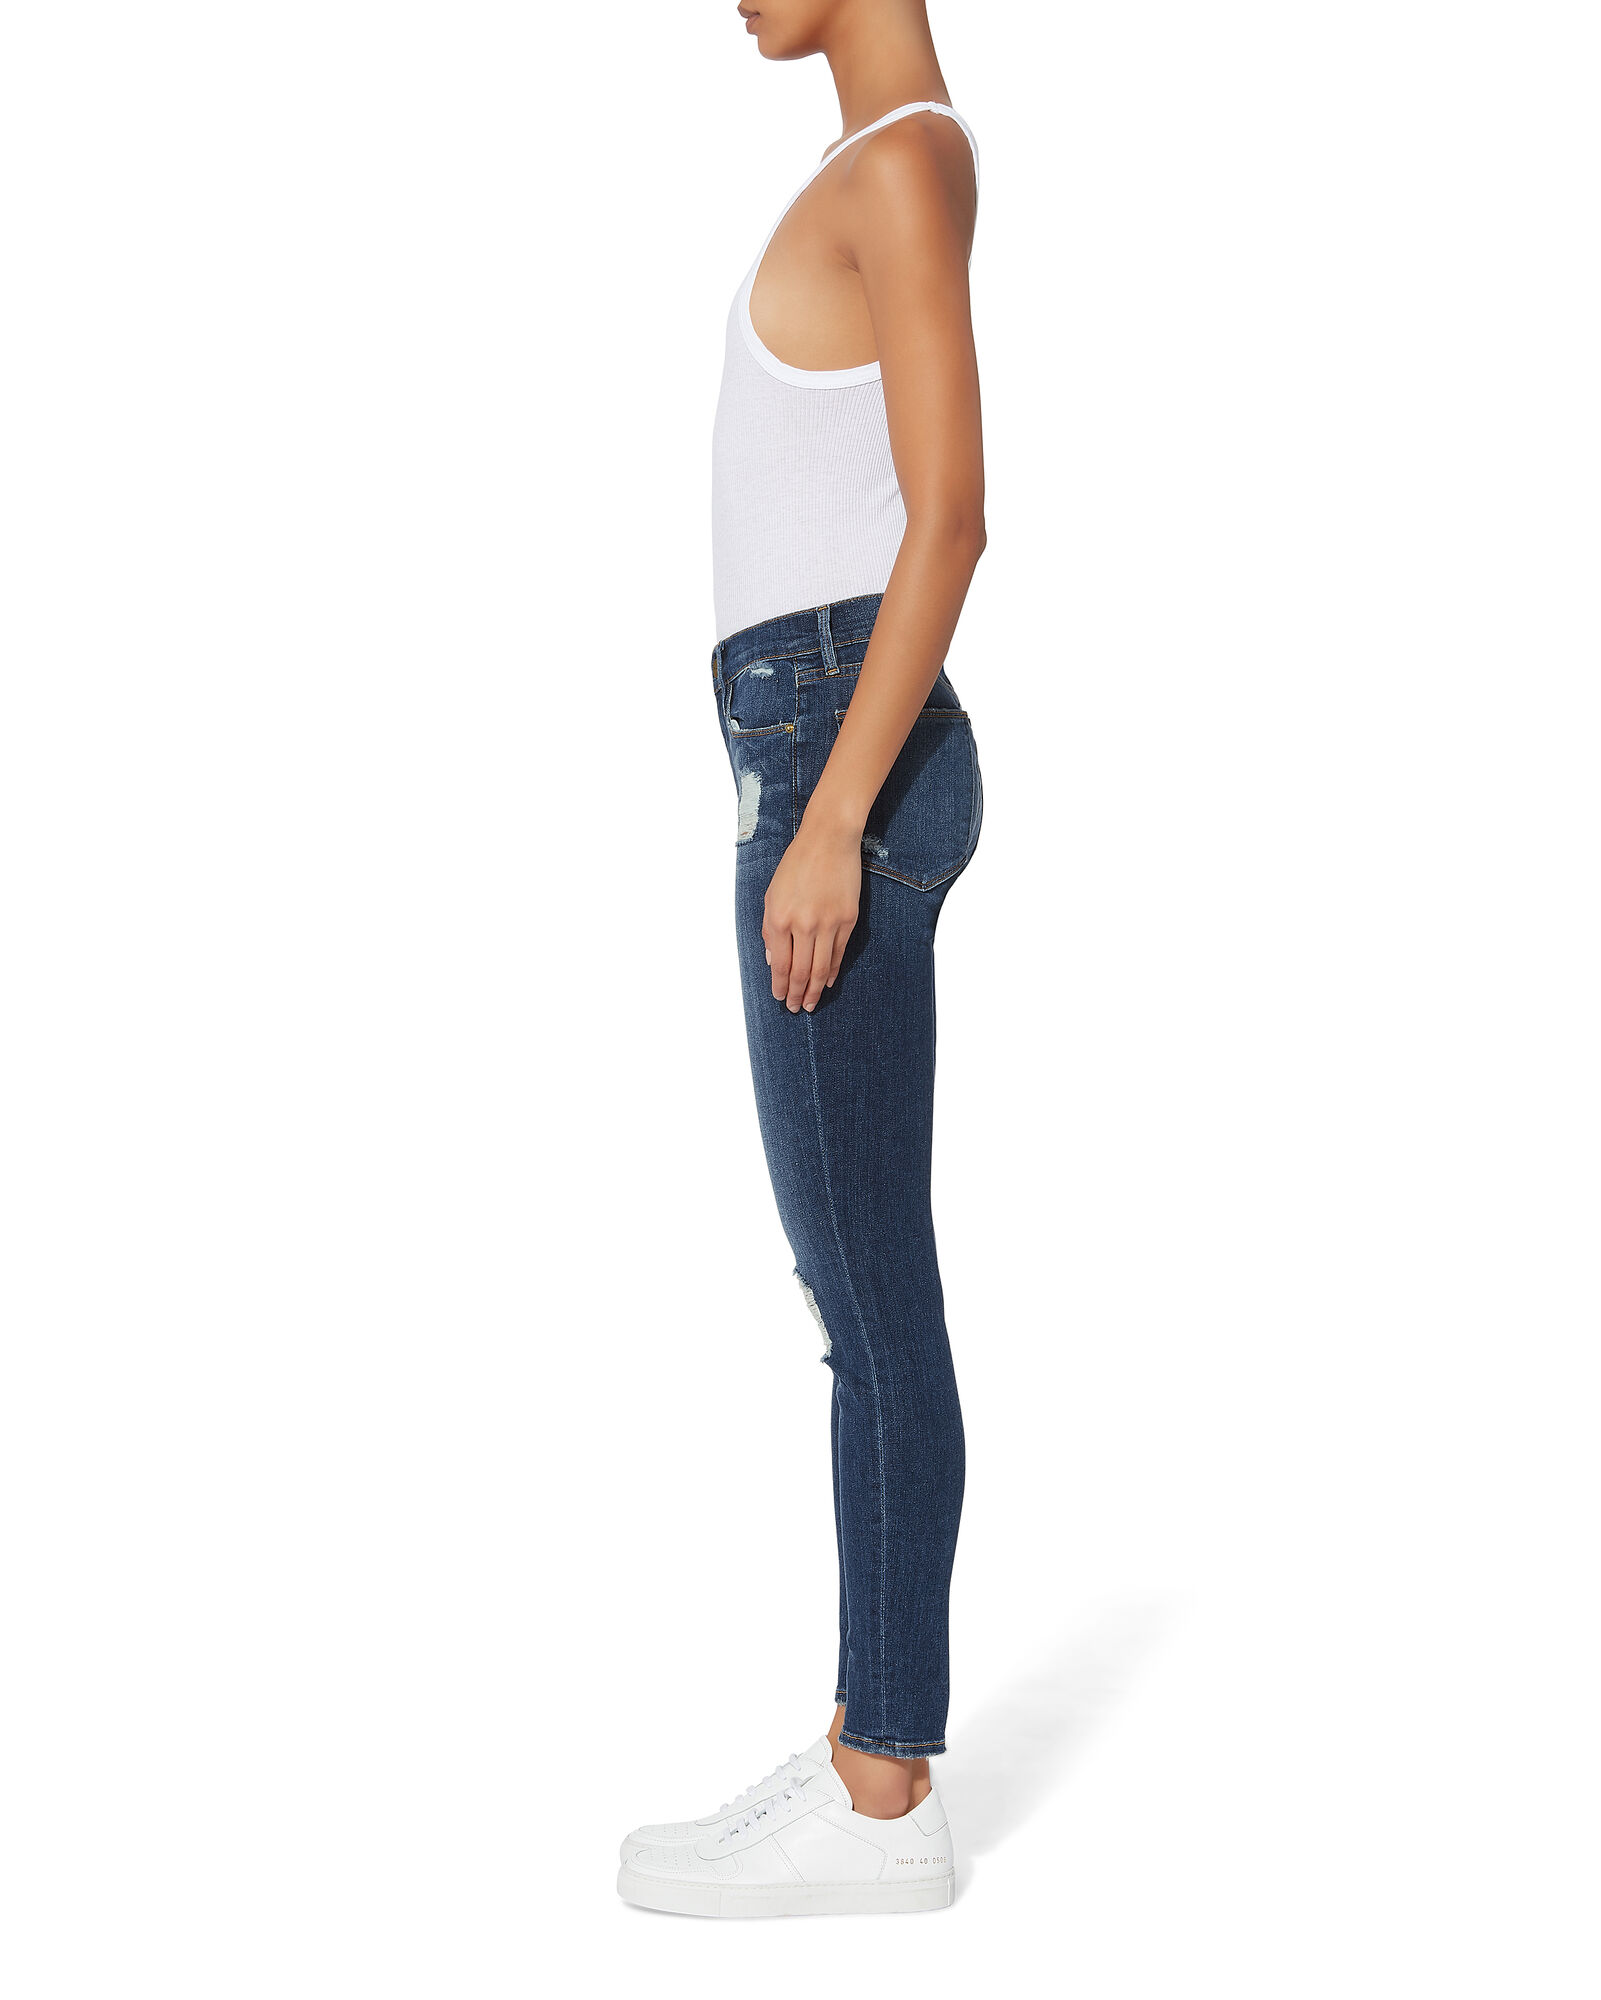 Le Skinny Hilltop Jeans, MEDIUM WASH DENIM, hi-res